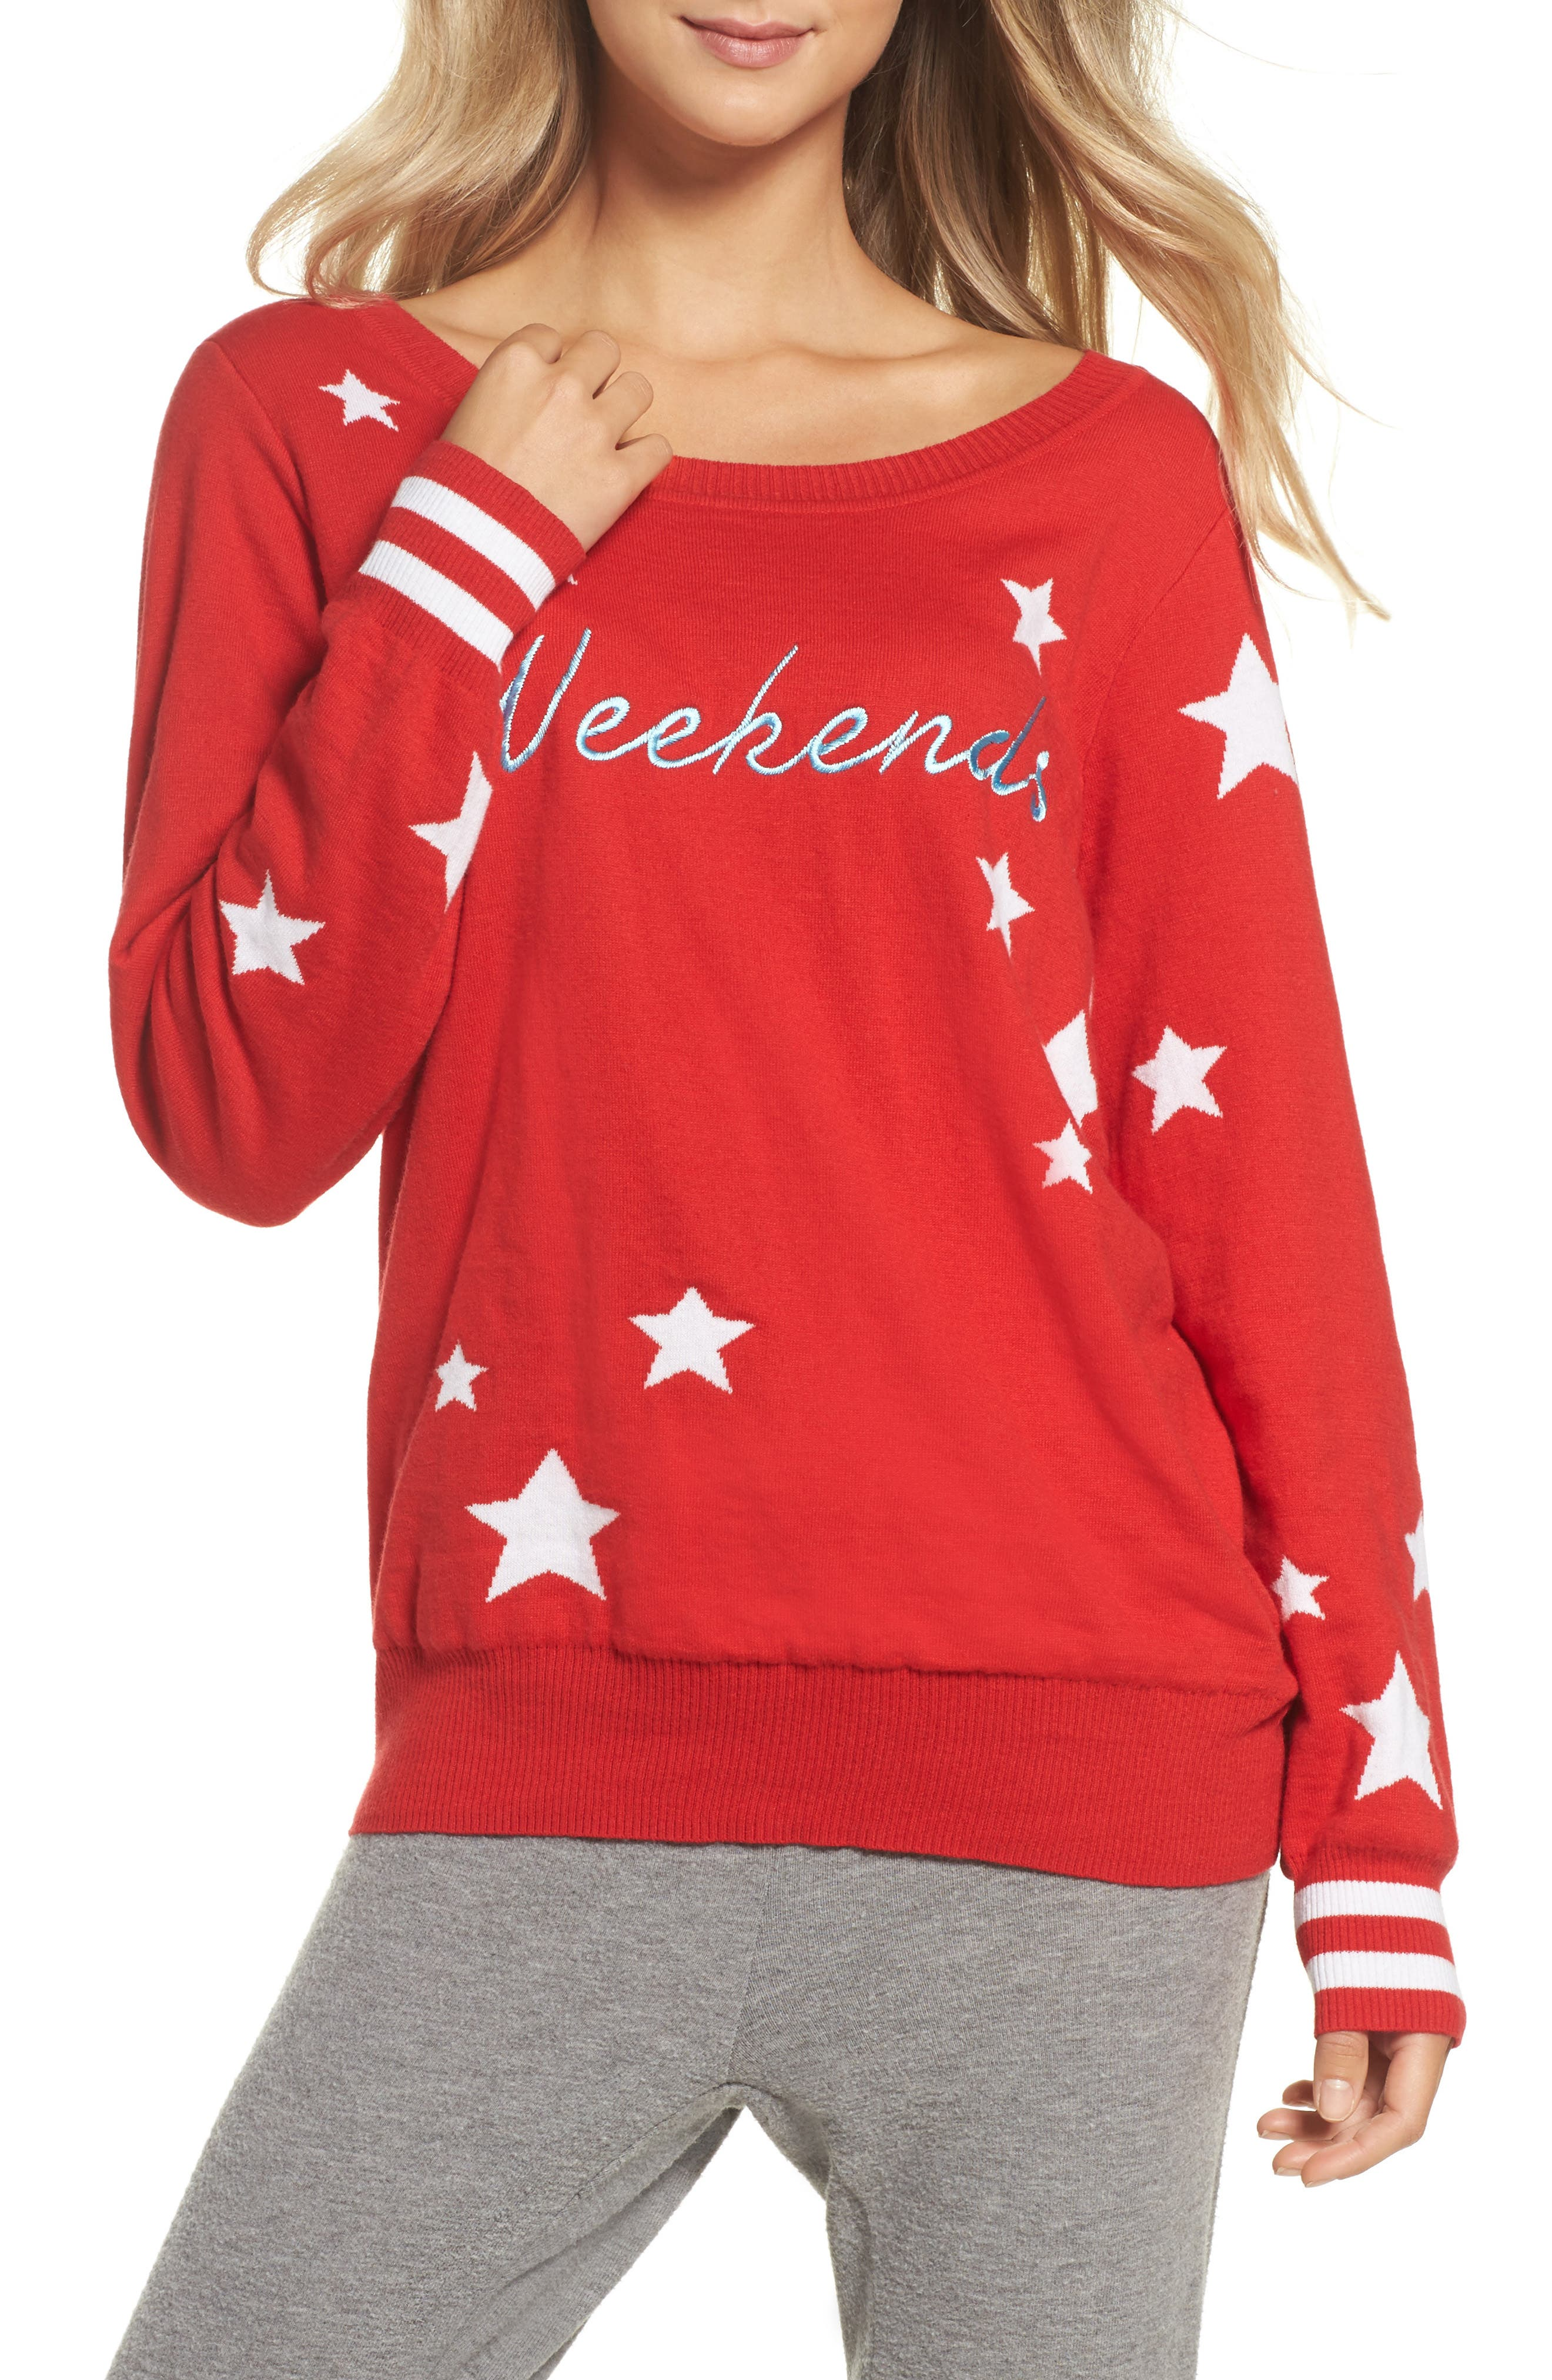 Weekends Intarsia Sweater,                         Main,                         color, 608